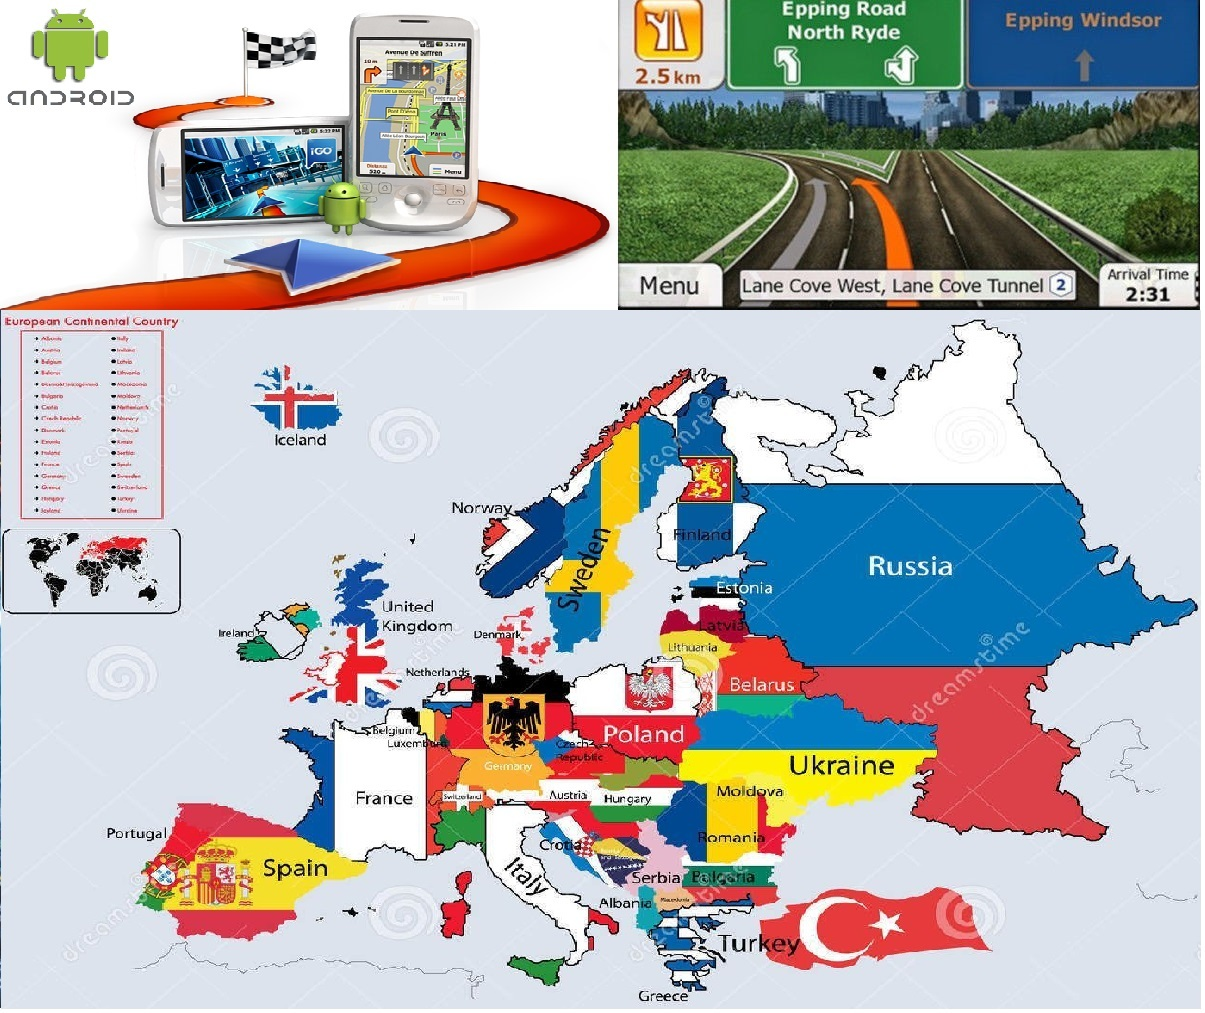 android eu android eu igo primo gps software full europe 2018q1 maps for android link download